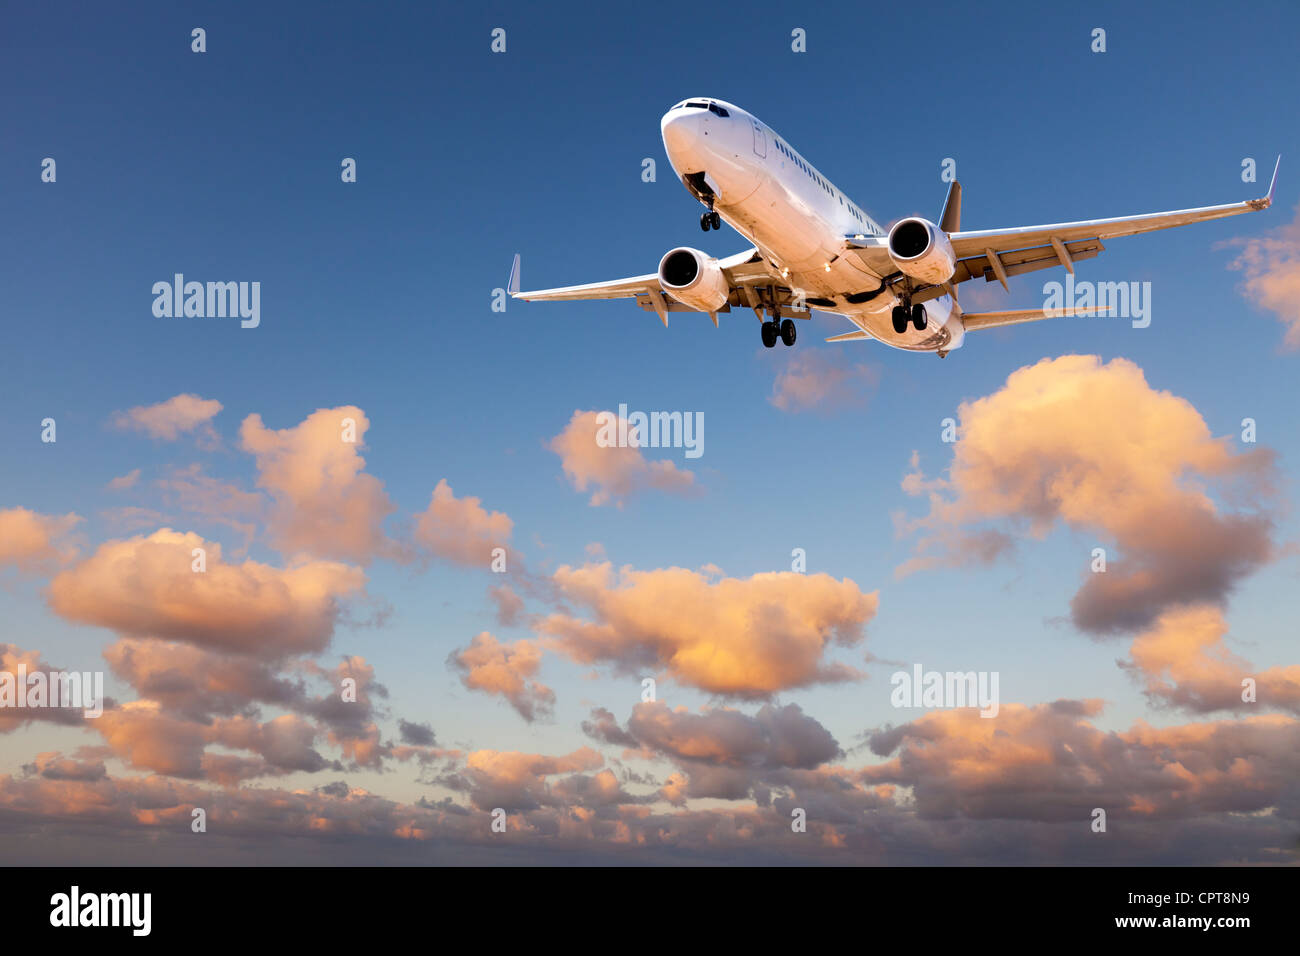 Boeing 737 coming in to land in sunset sky. - Stock Image